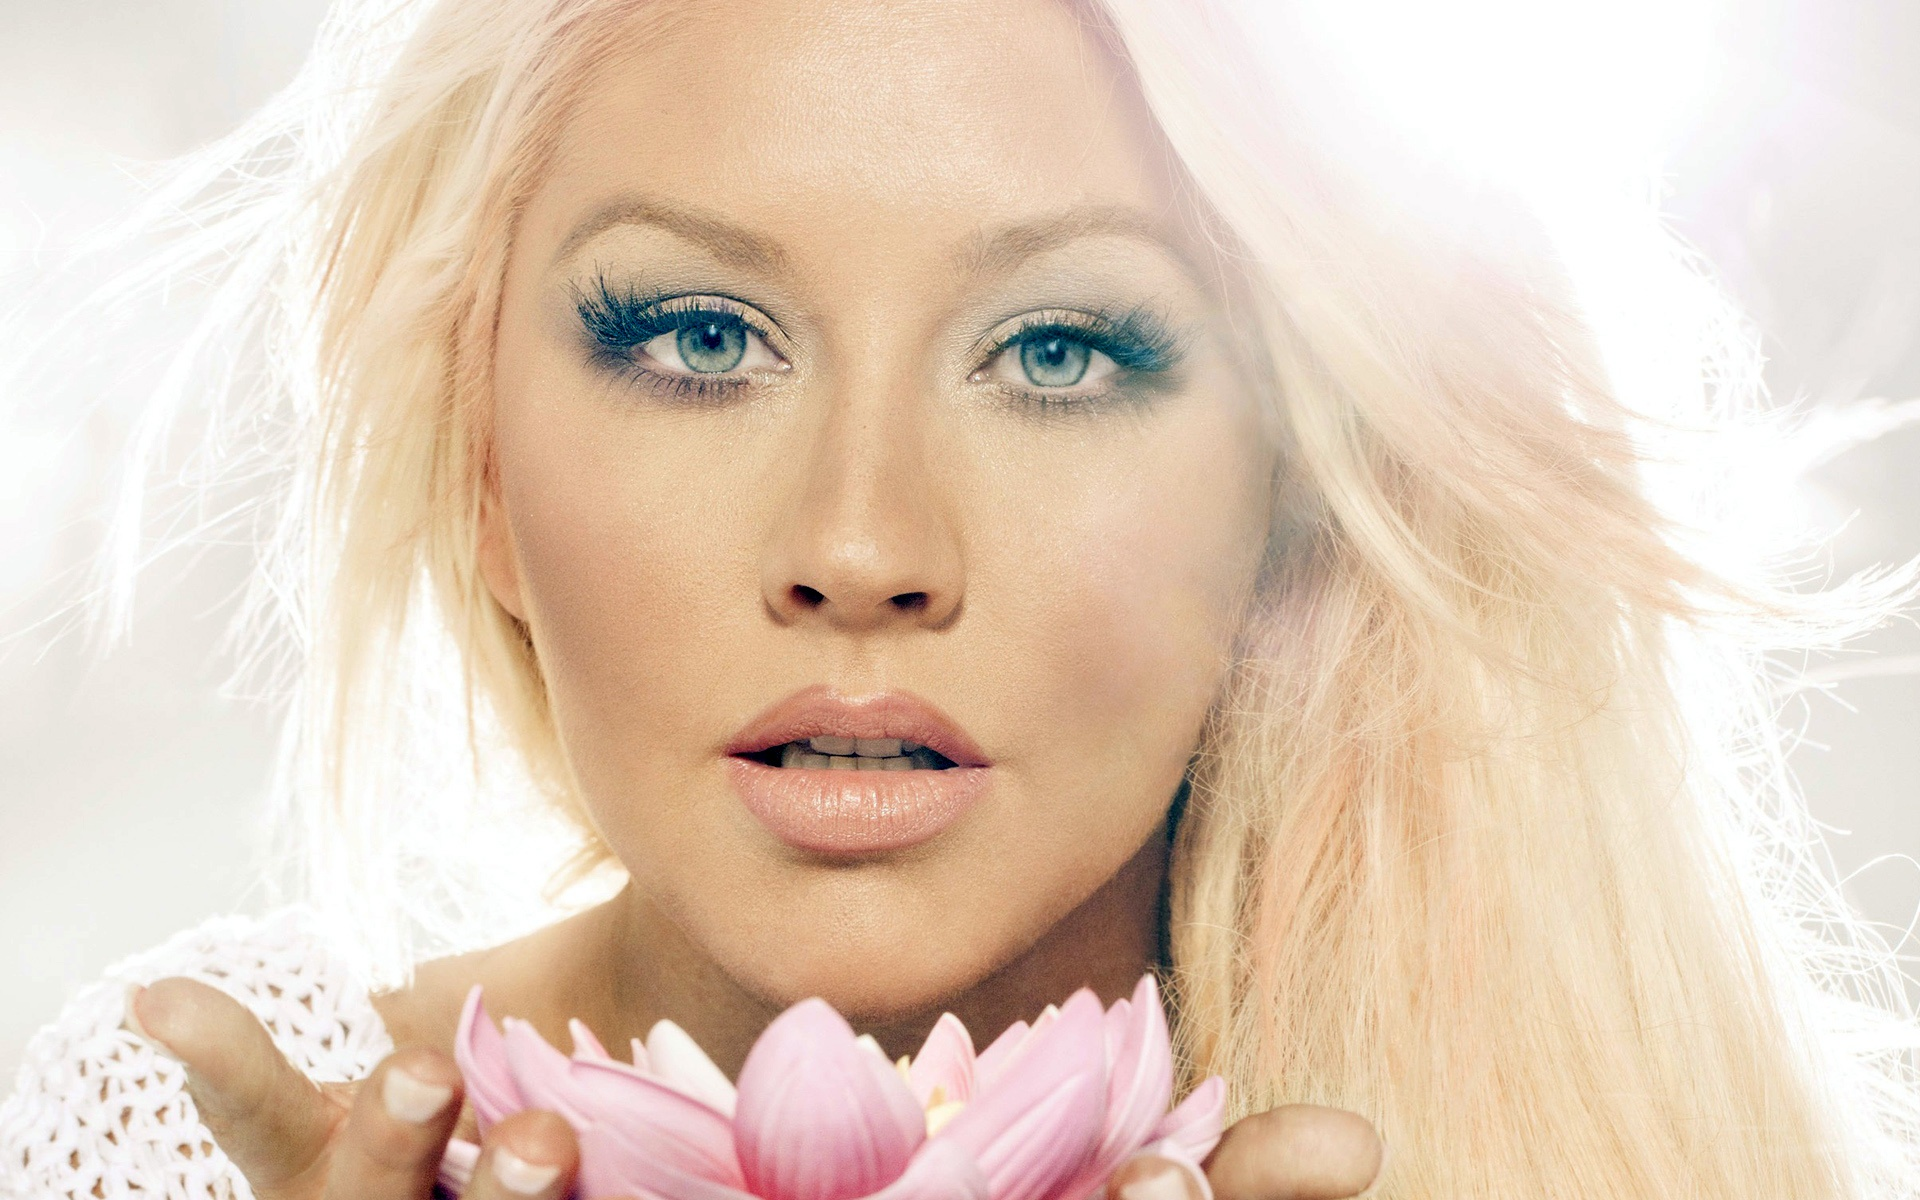 Christina Aguilera Wallpaper HD Desktop 1920x1200